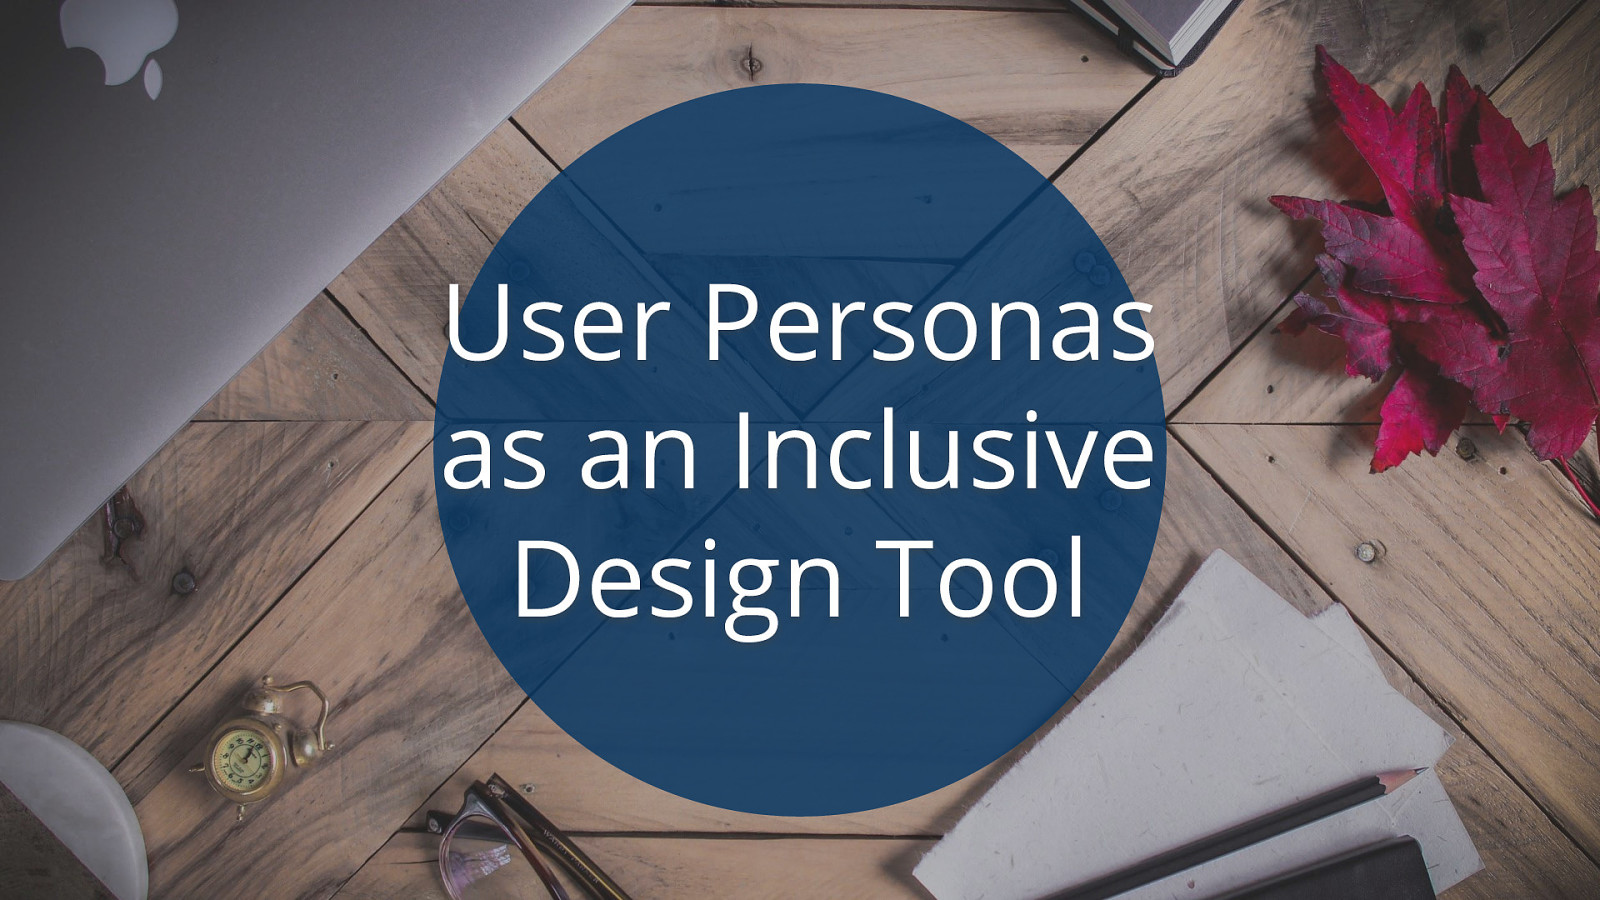 User Personas as an Inclusive Design Tool